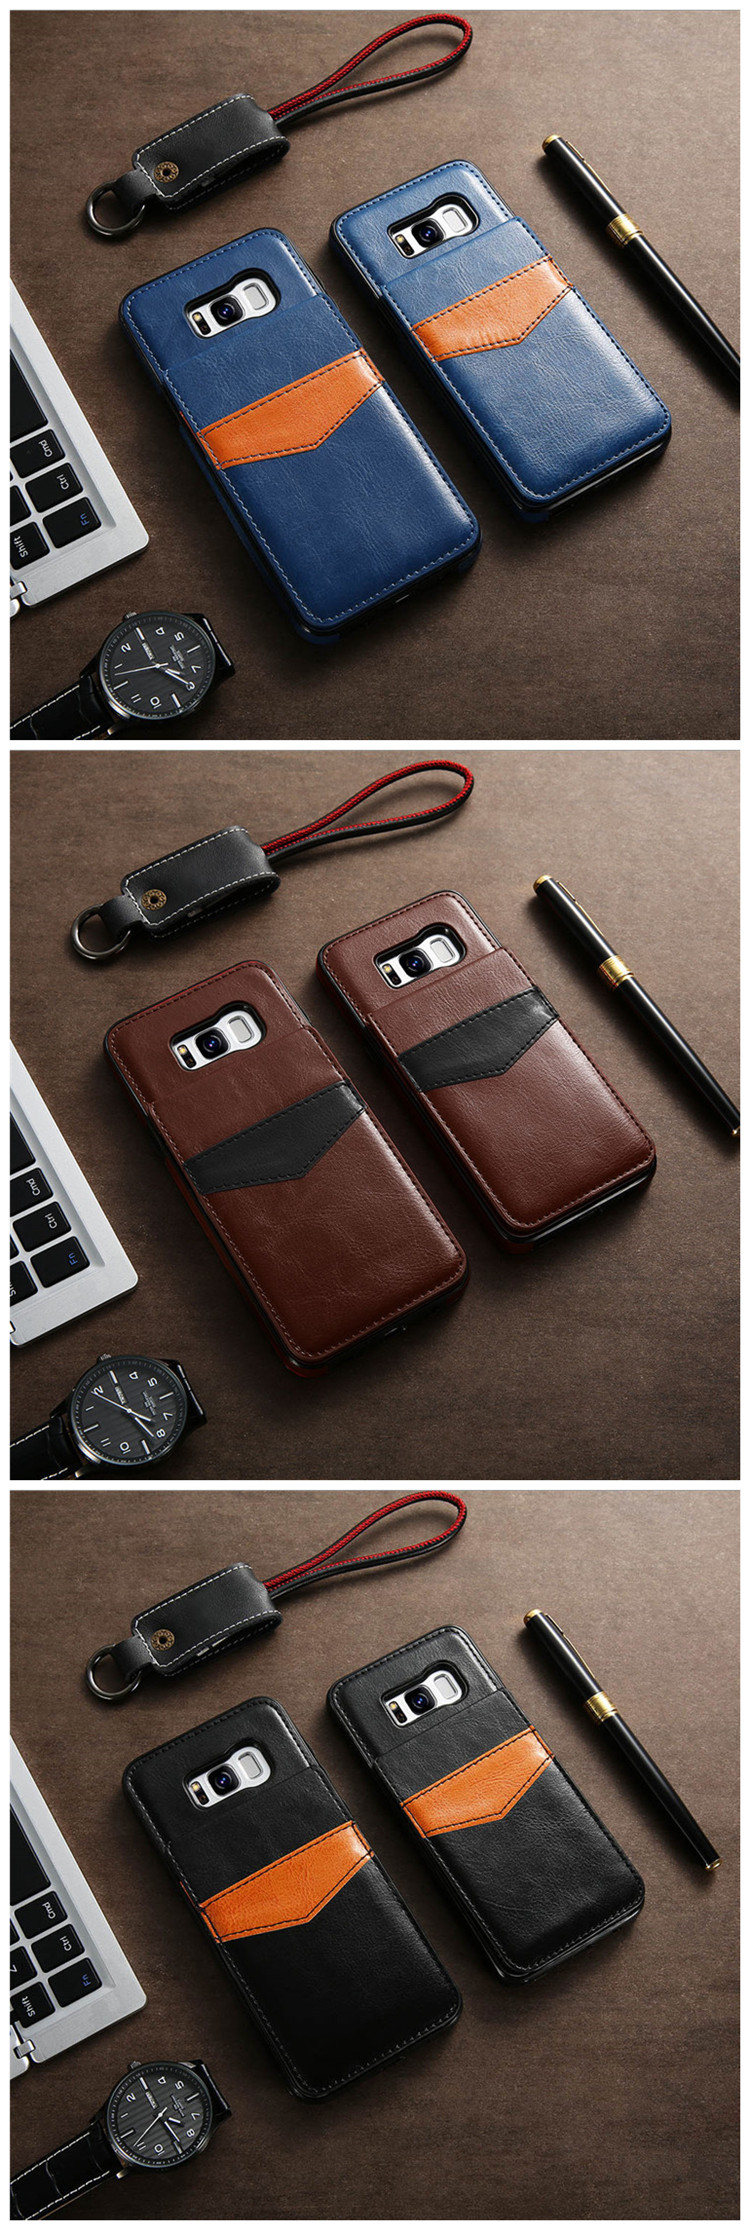 KISSCASE Leather flip Case For iPhone X 6 7 8 Plus XS Max Xr Card Holder Case For Samsung Galaxy S8 S9 Plus Note 9 8 Cover